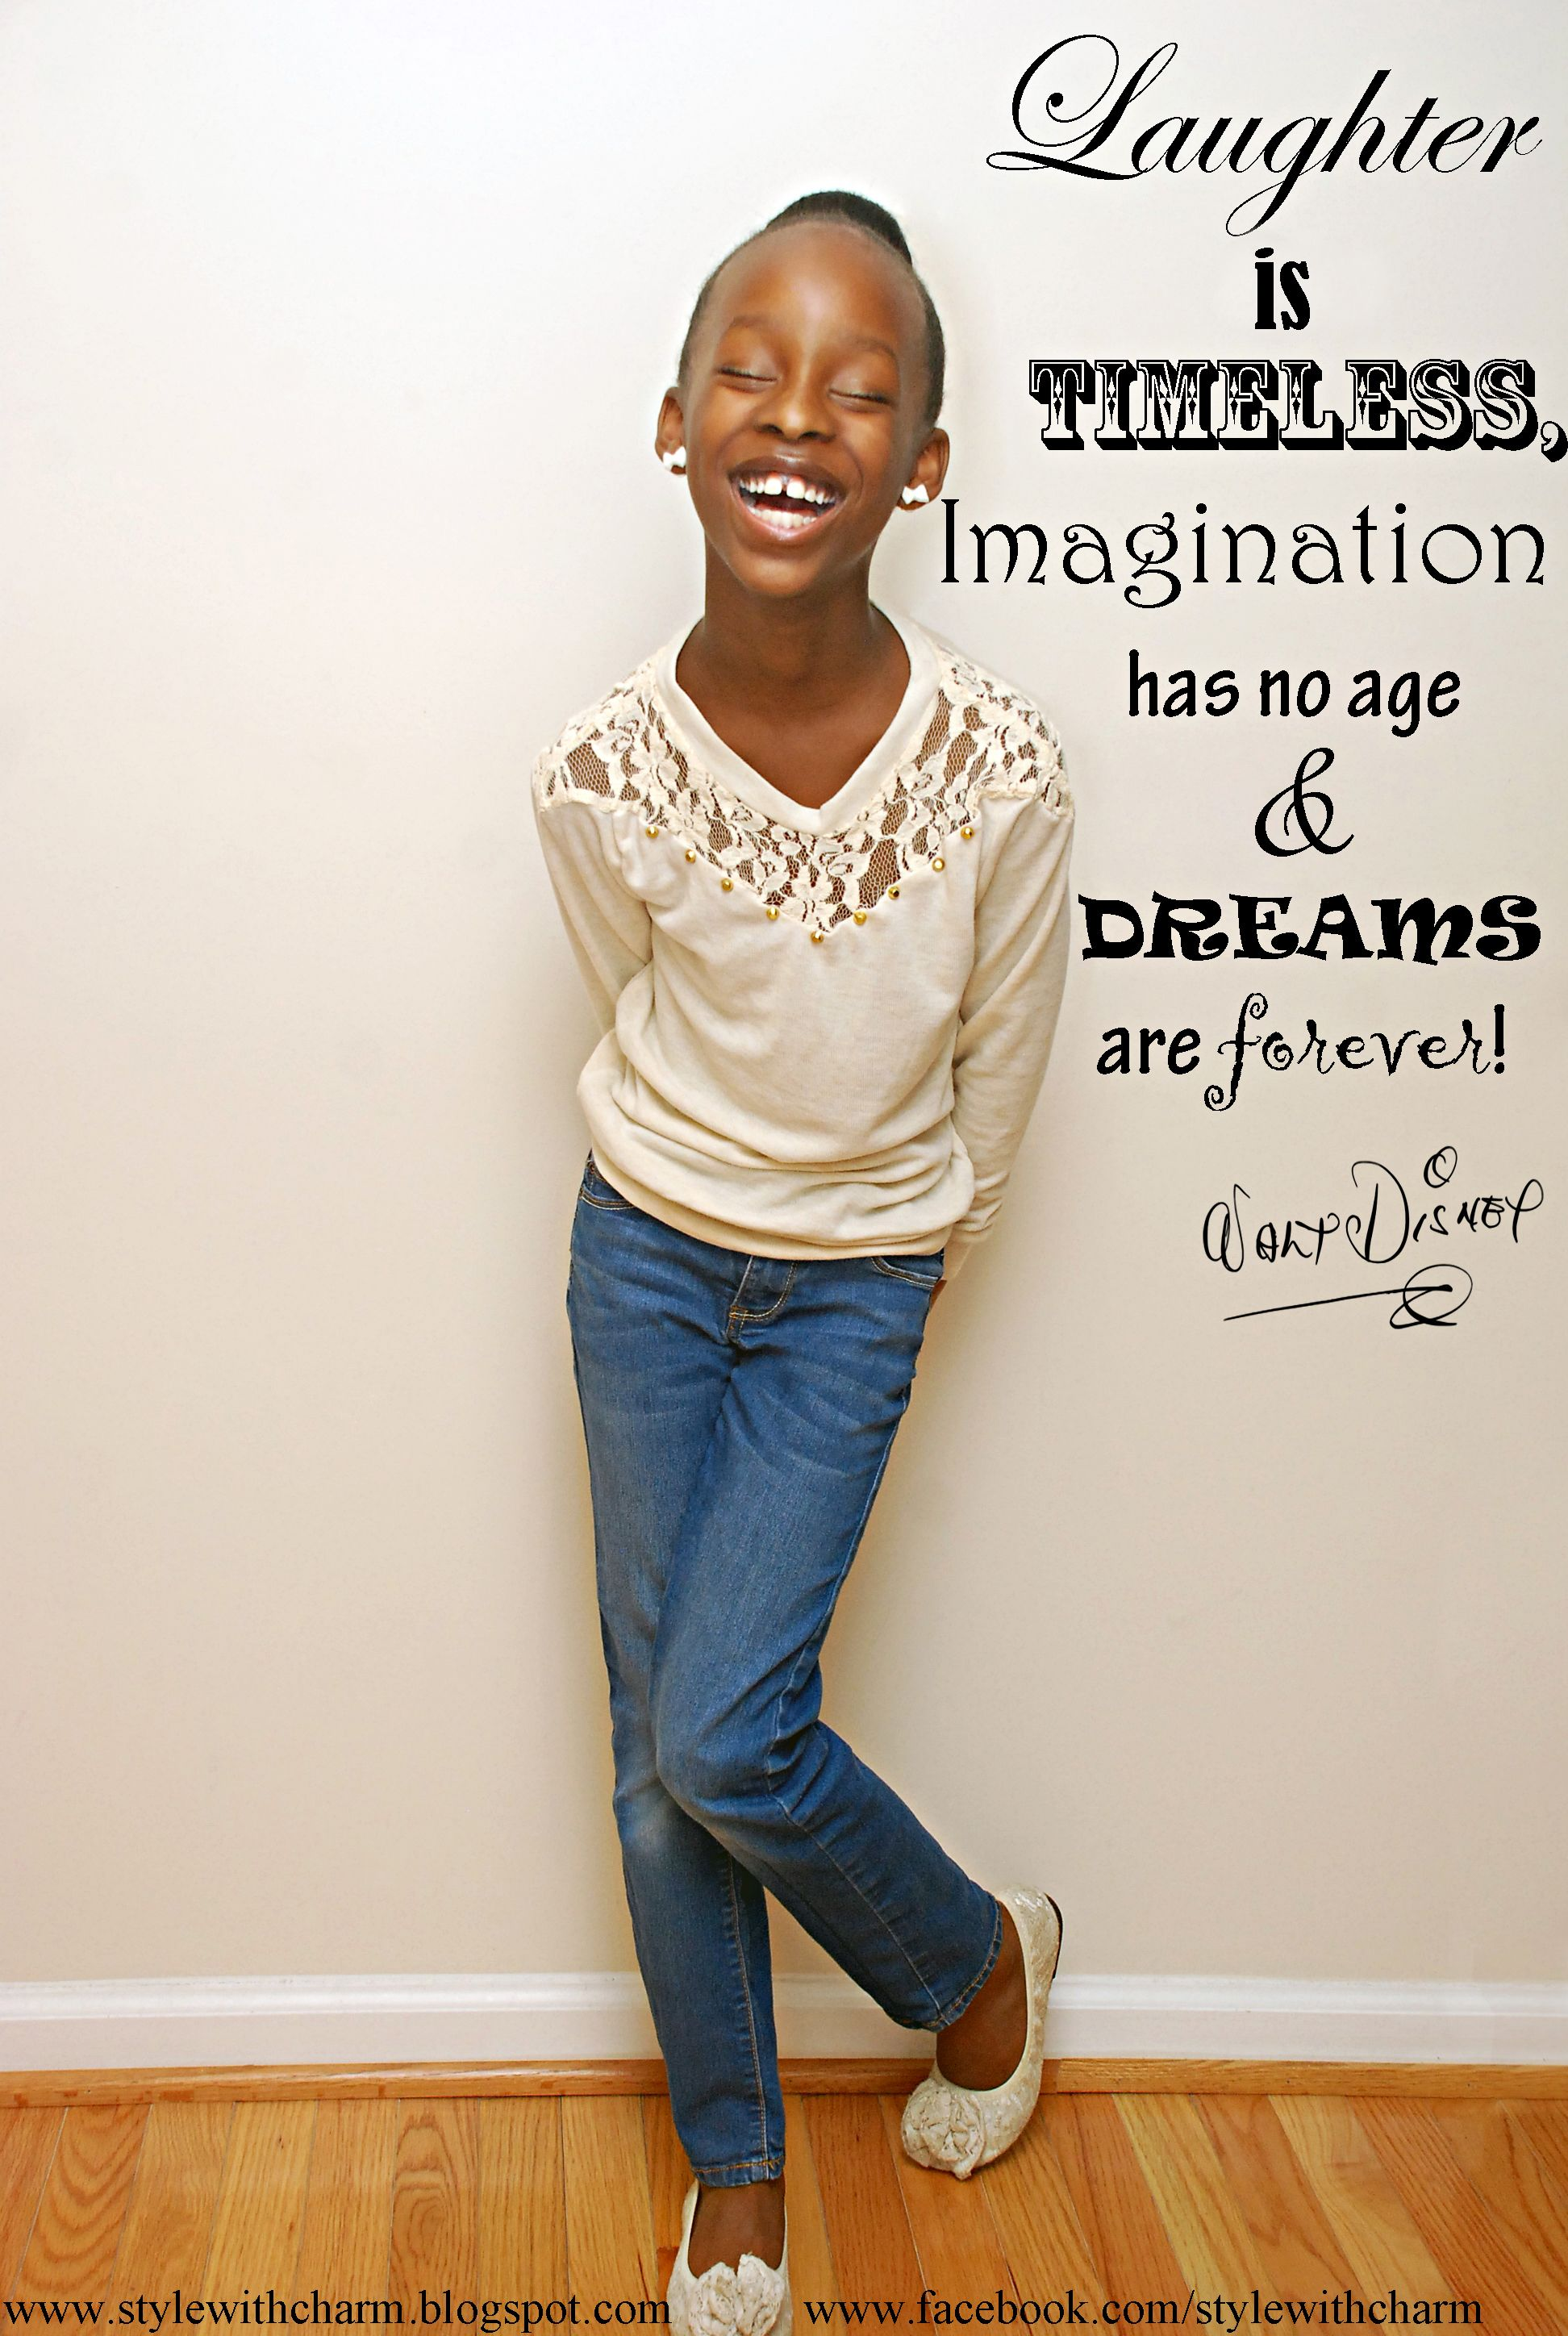 Laughter is timeless, imagination has no age and dreams are